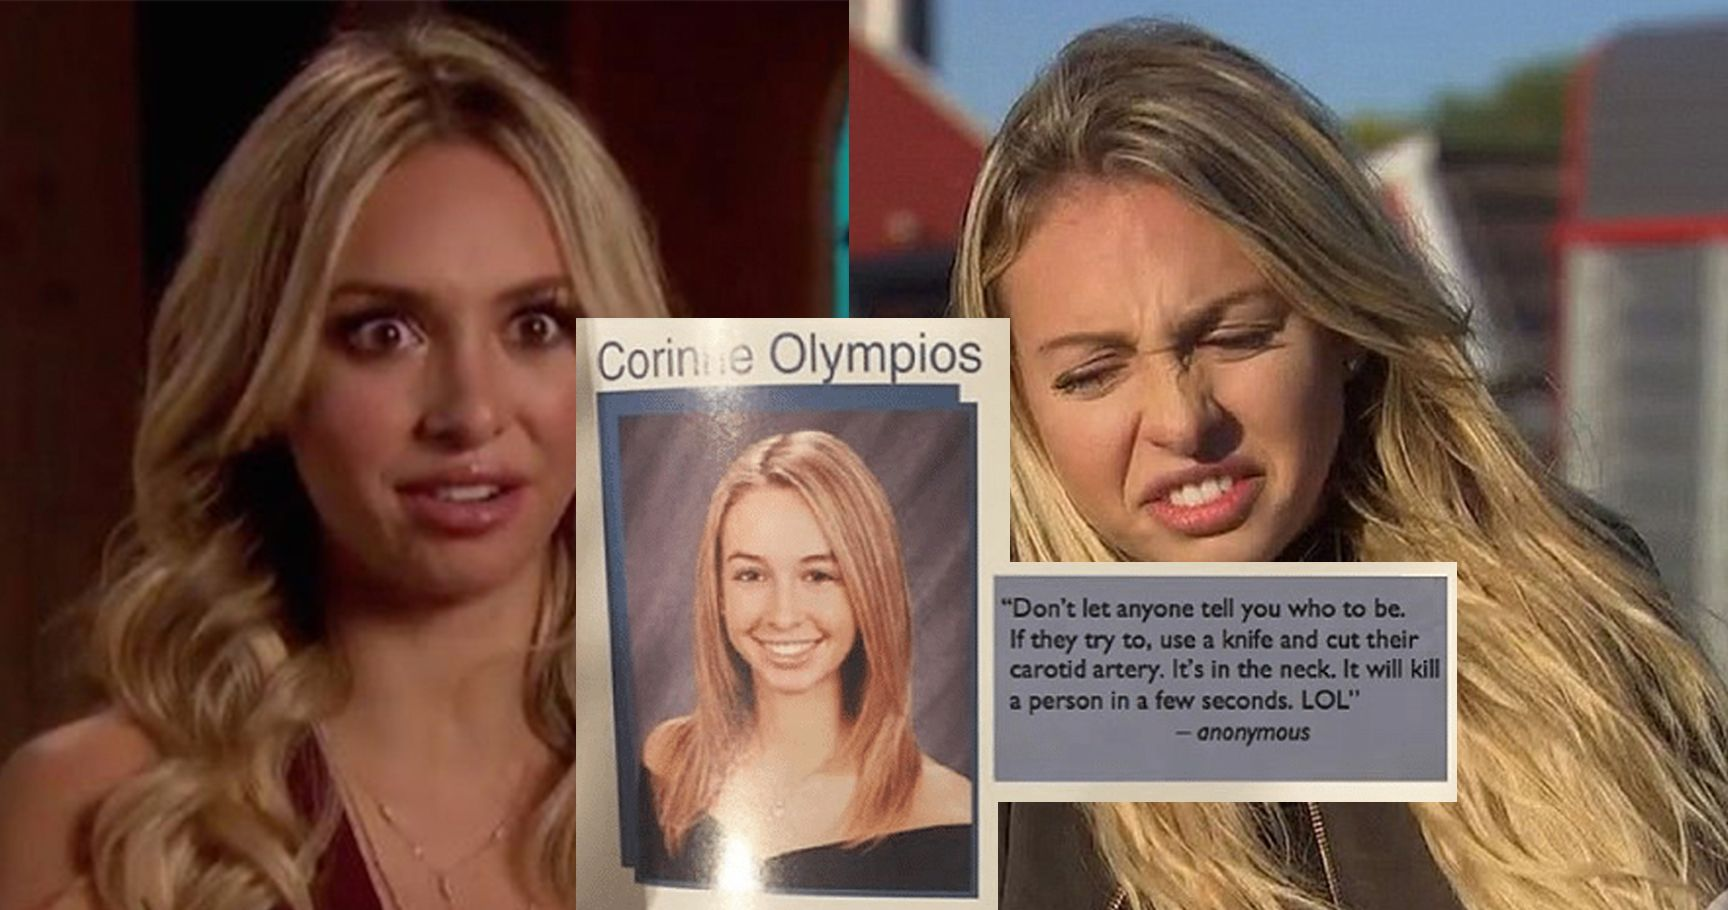 15 Facts About 'Bachelor' Villain Corrinne Olympios That We Never Knew